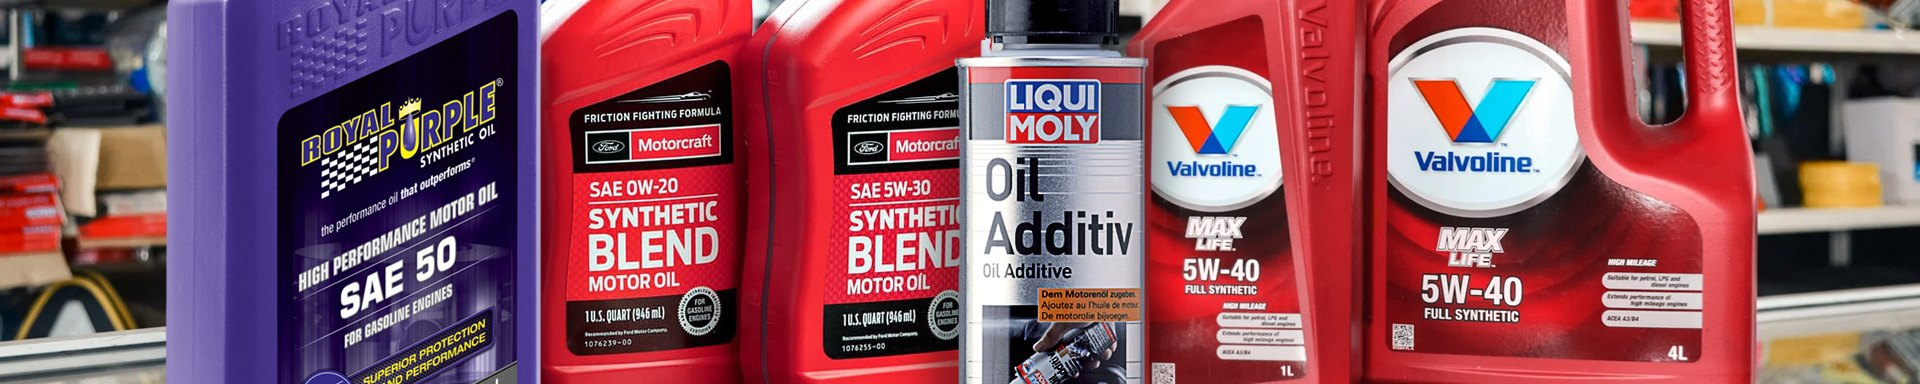 Bmw Oils, Fluids, Lubricants